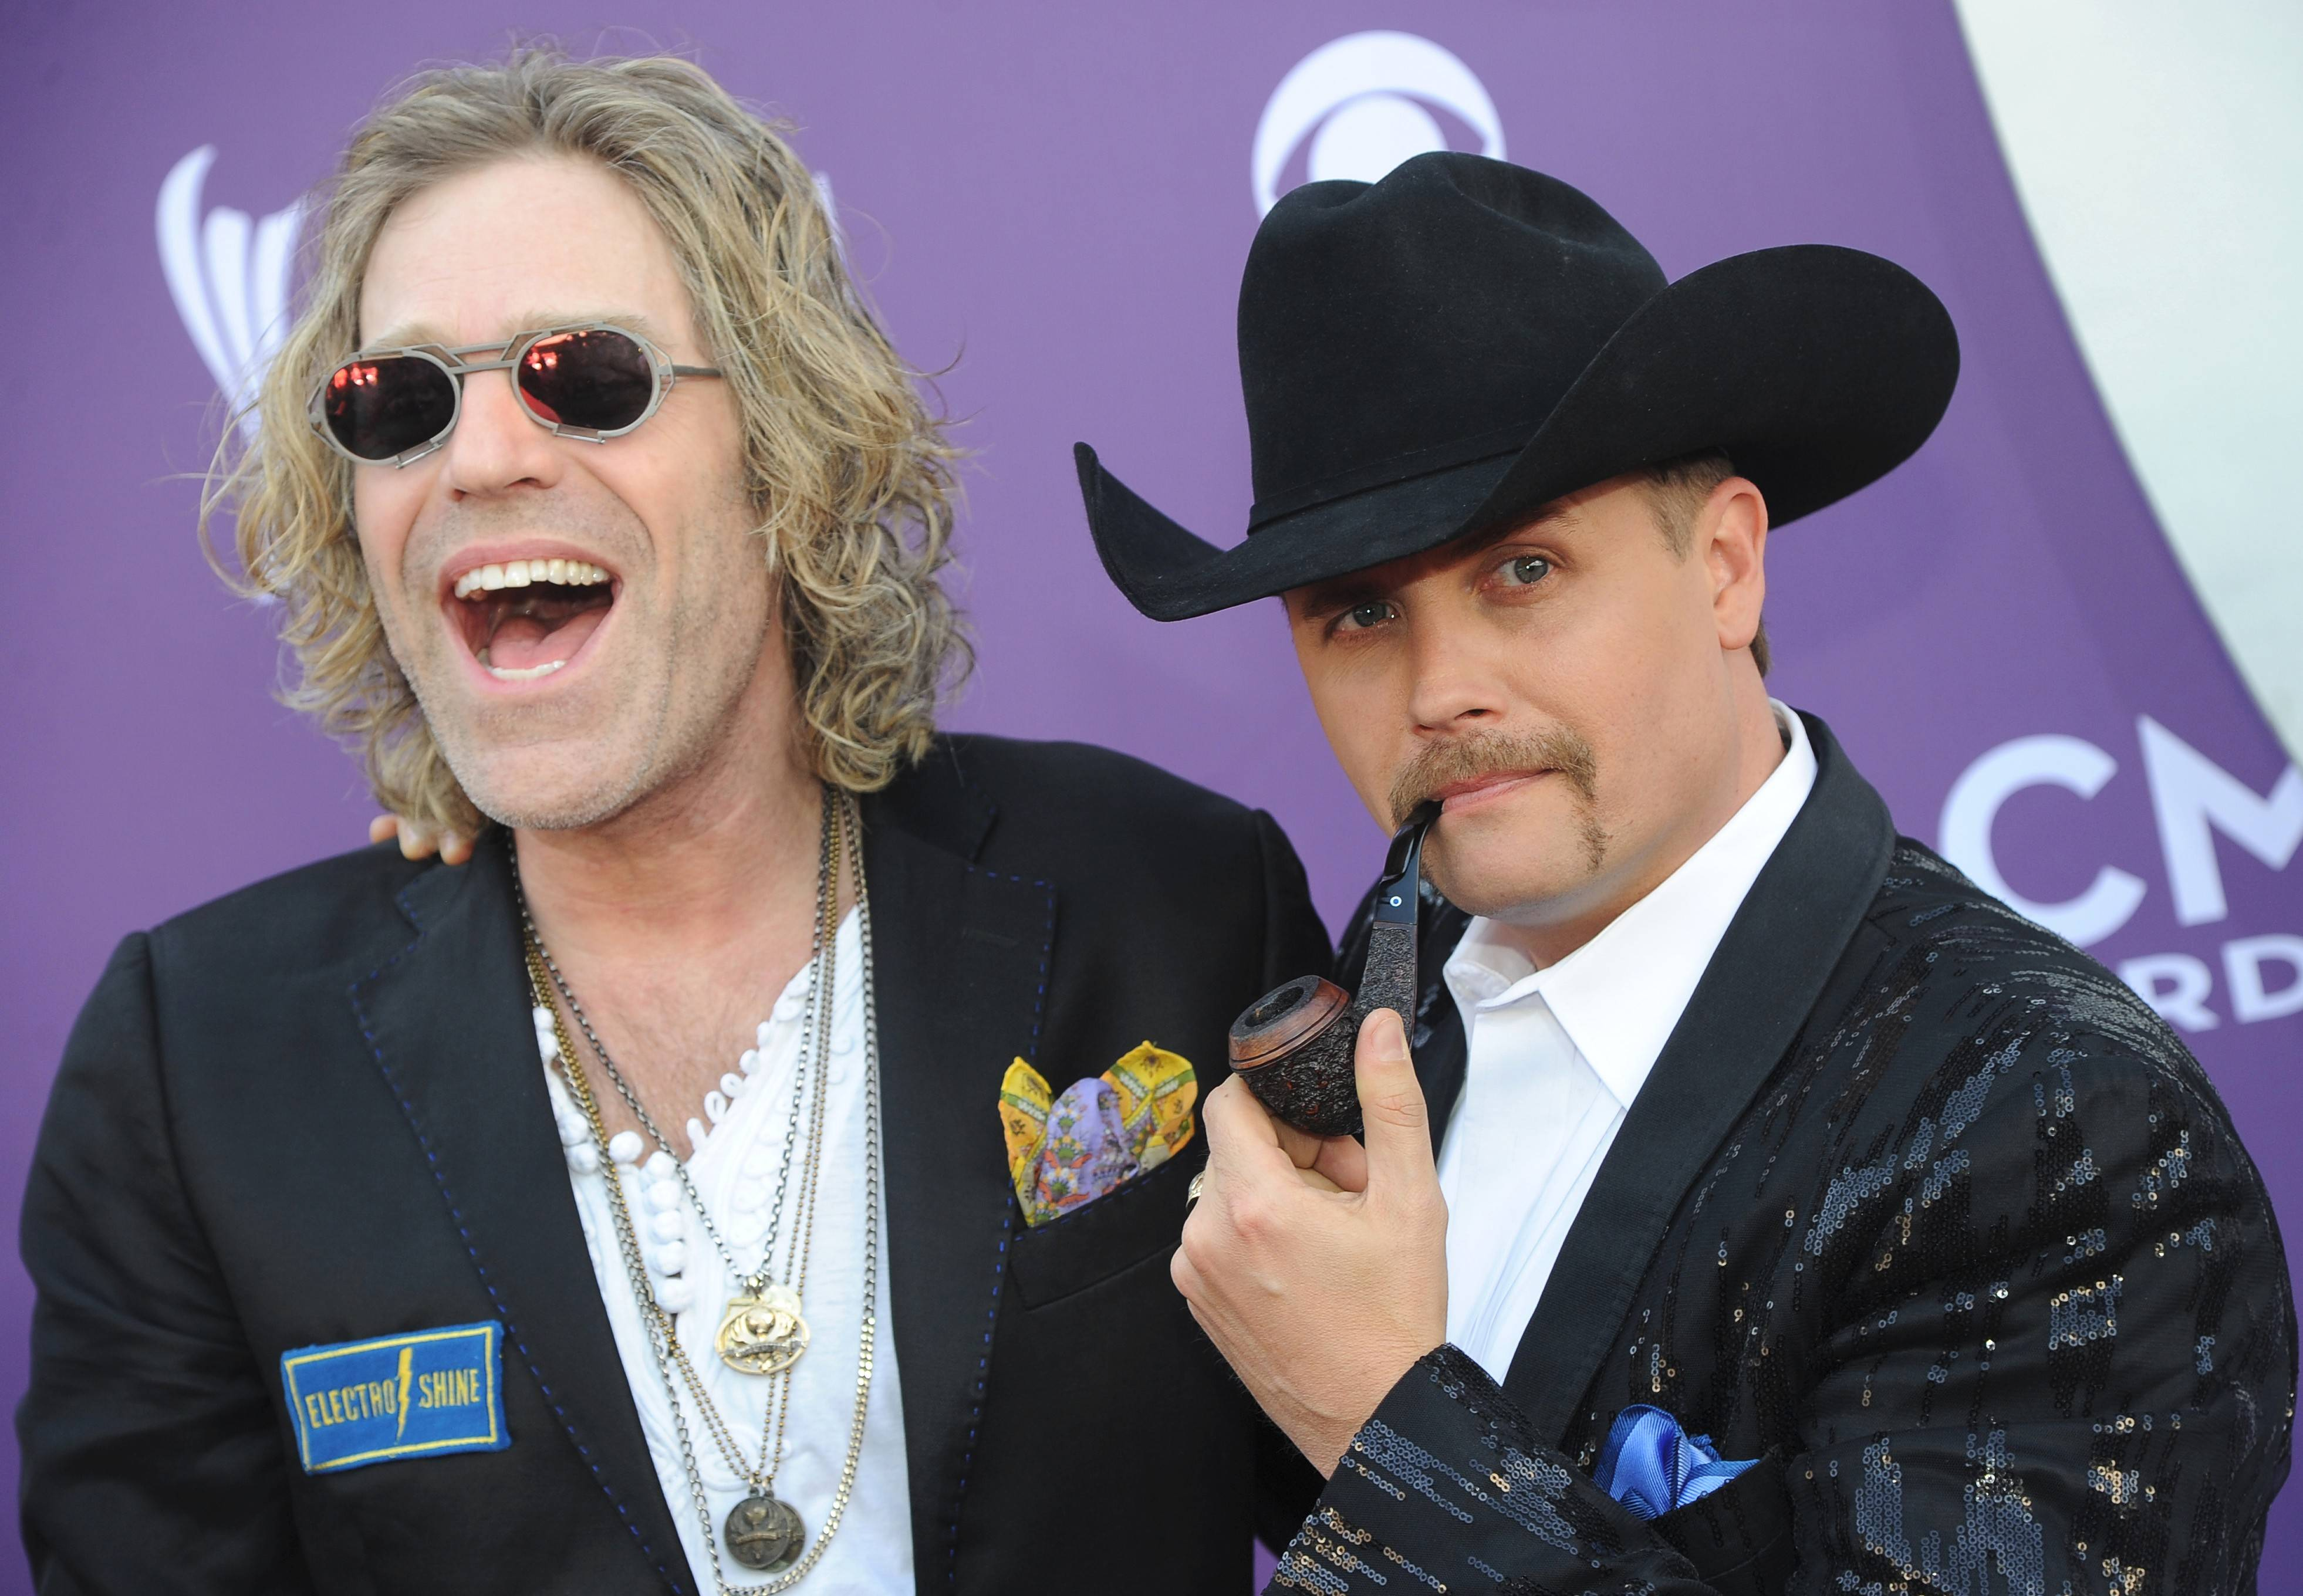 Big & Rich — Big Kenny, left, and John Rich — will headline Austin's Fuel Arena on Saturday, Feb. 22.